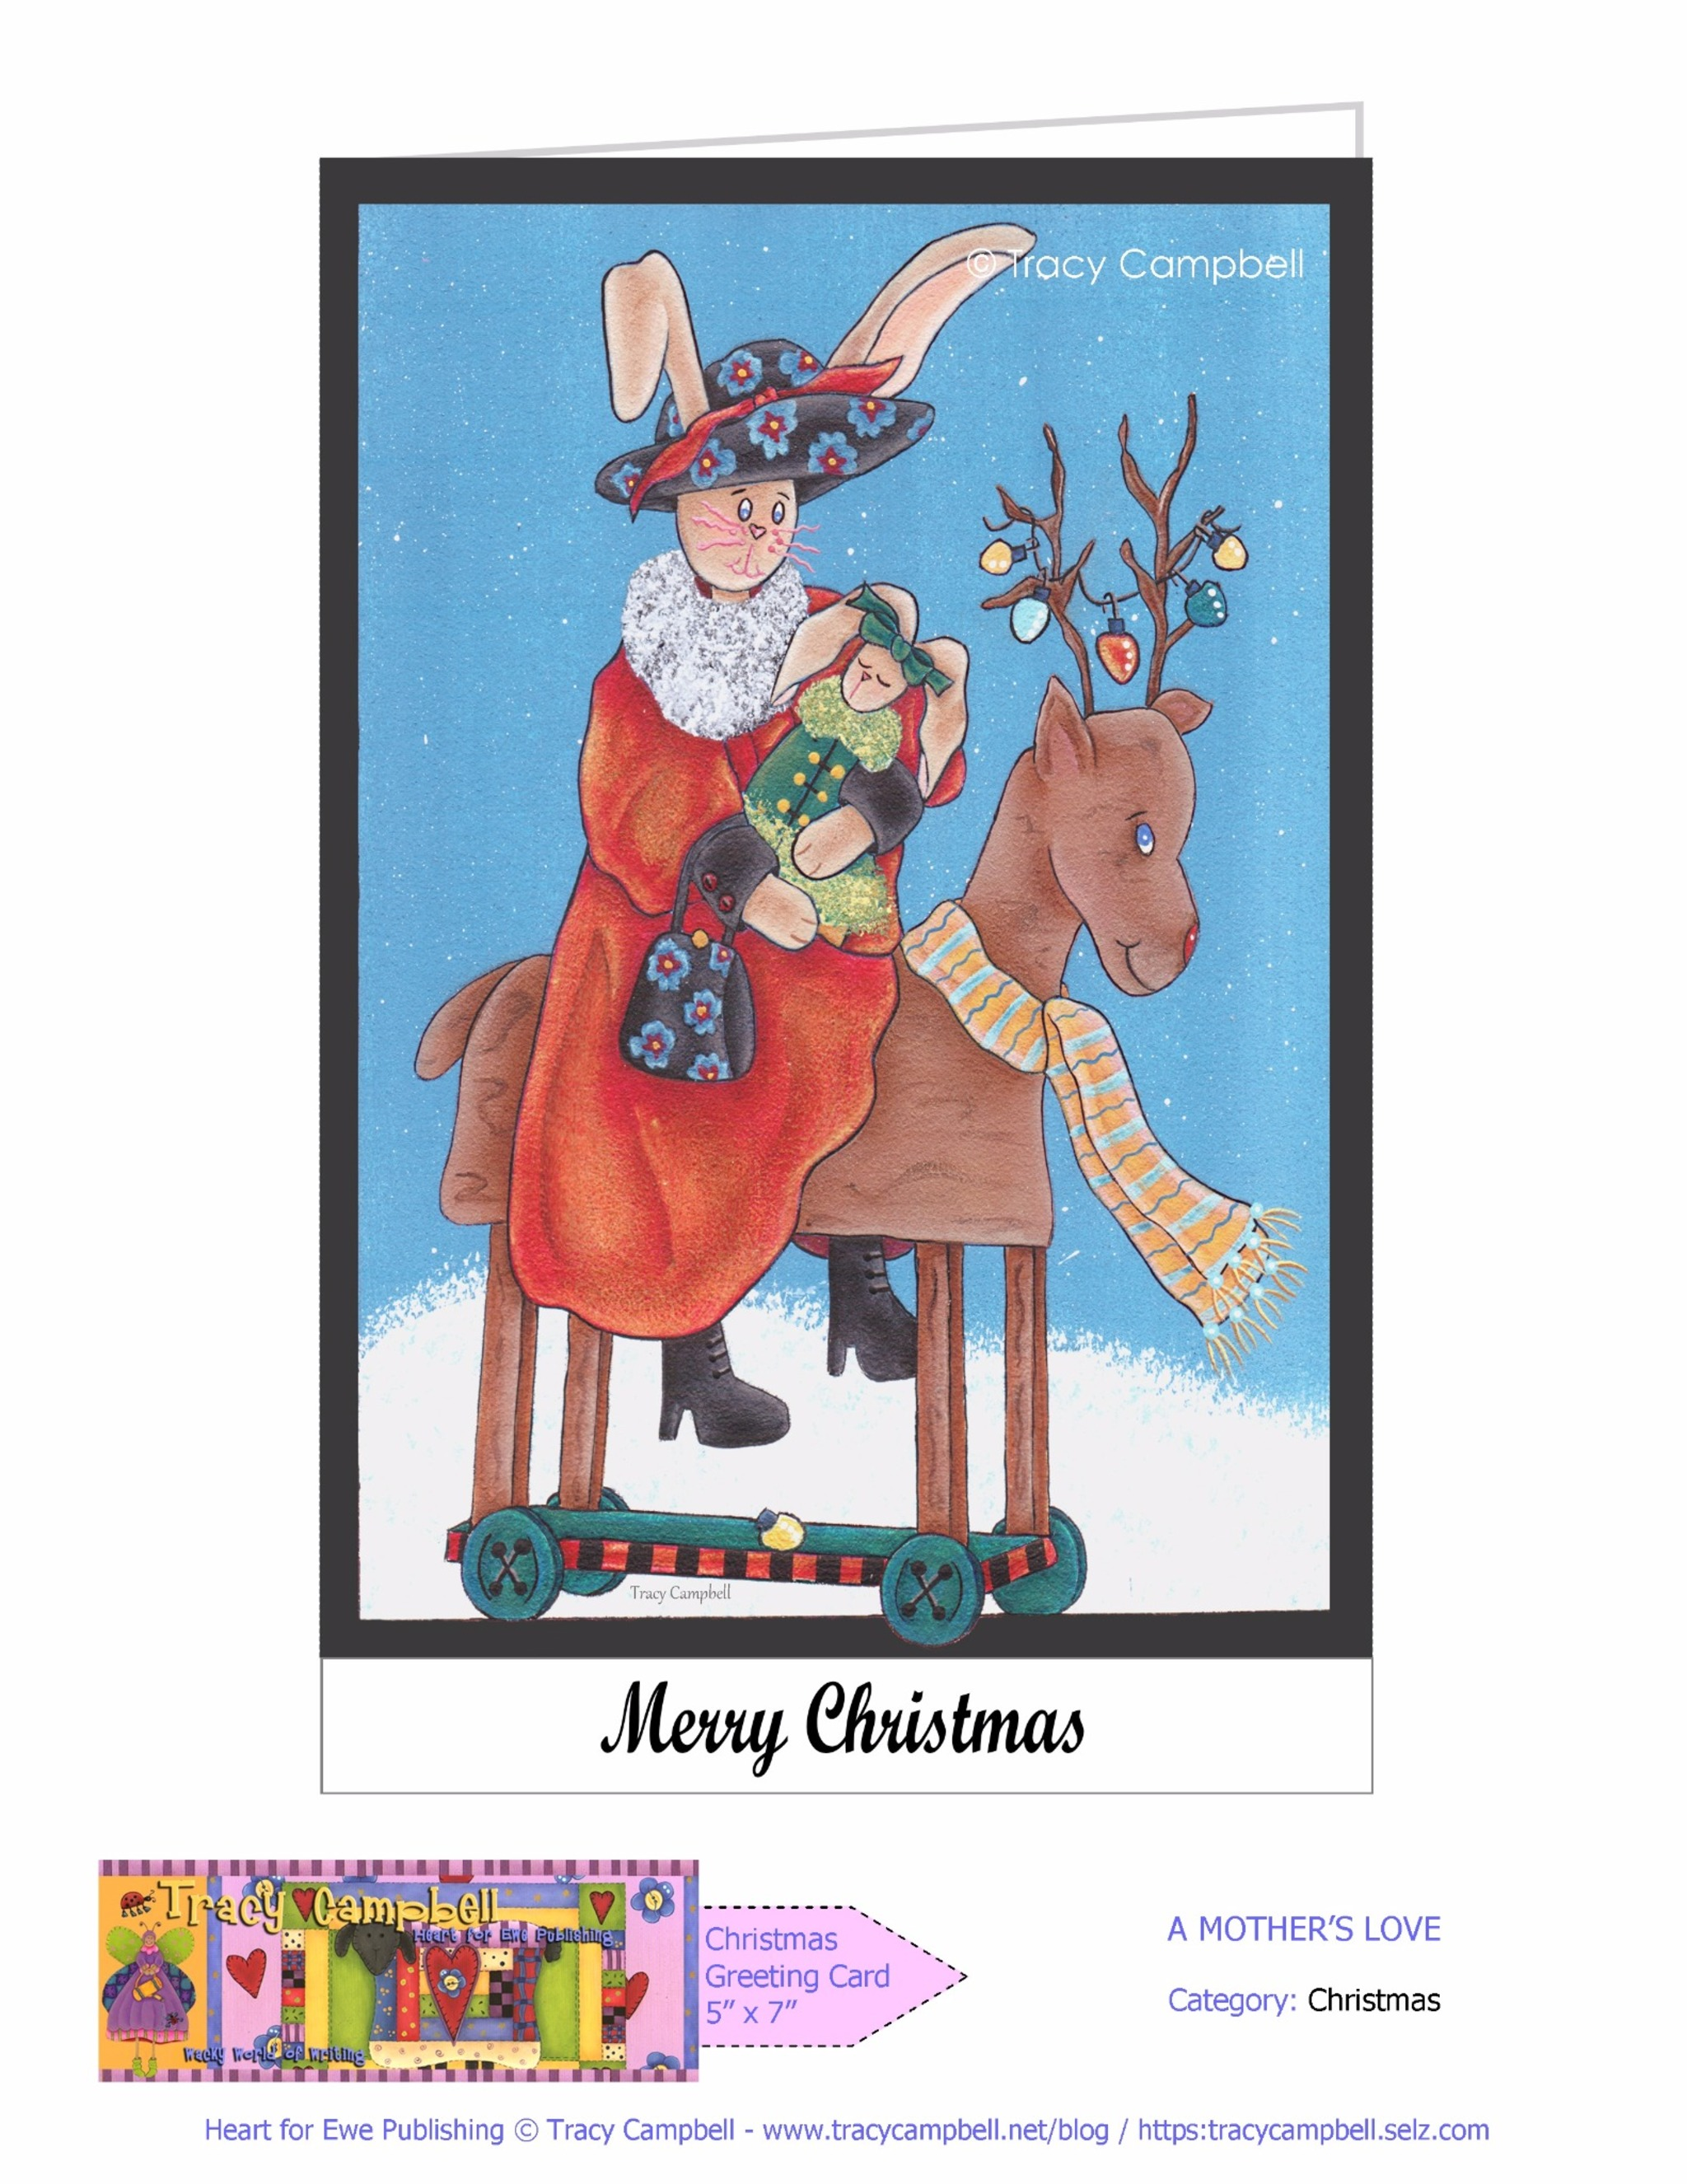 A MOTHER'S LOVE CHRISTMAS GREETING CARD